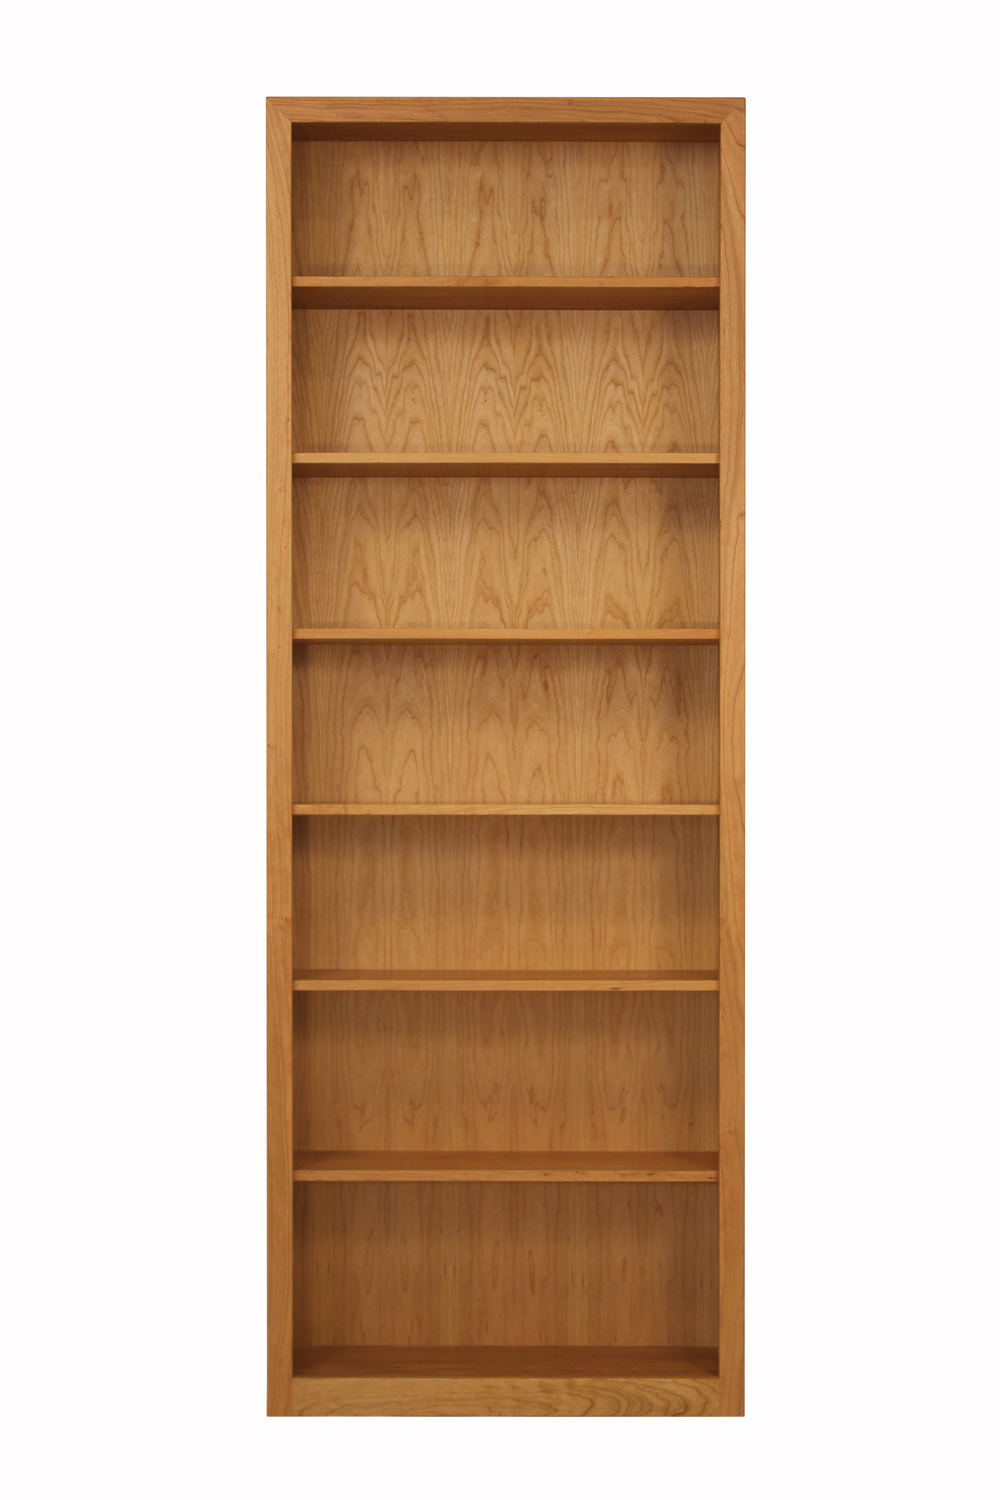 bookcases antique of english pine pair glazed product